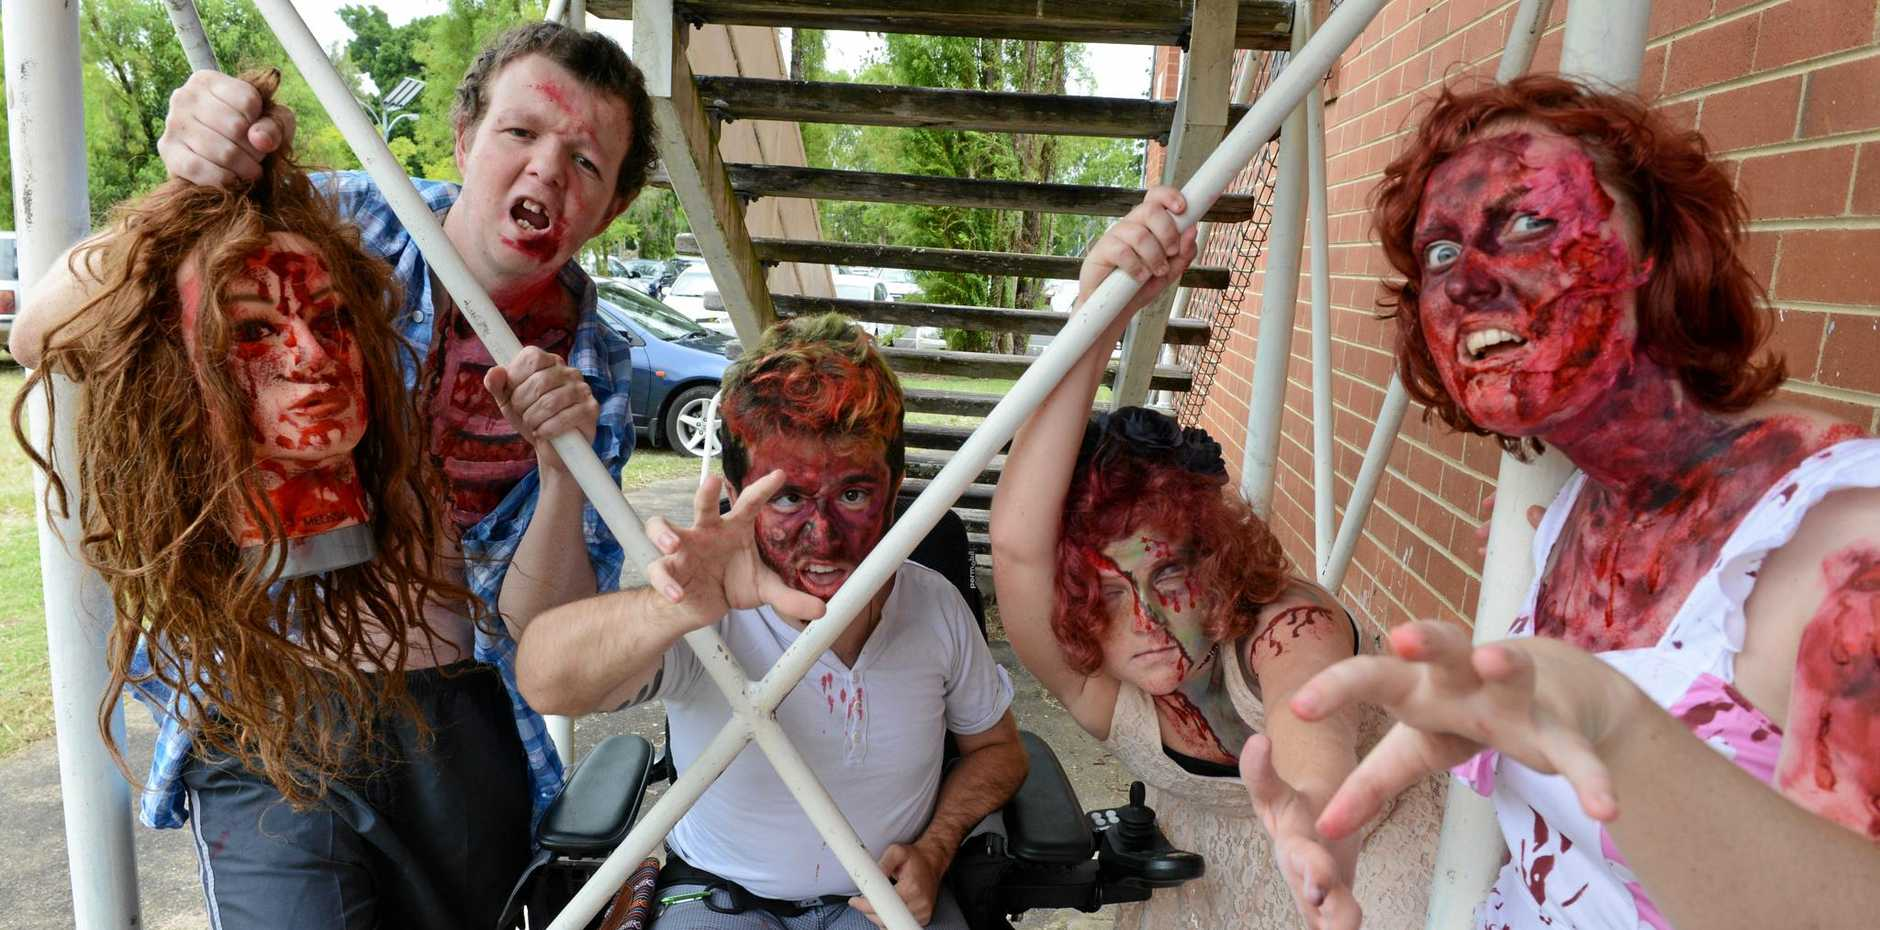 FROM LEFT, Maverick Walker 19, Kristian Keogh, 20, Kaatja Rose Pond, 21, and Krystal De La Porte, 10, prepare for the Zombie Walk.